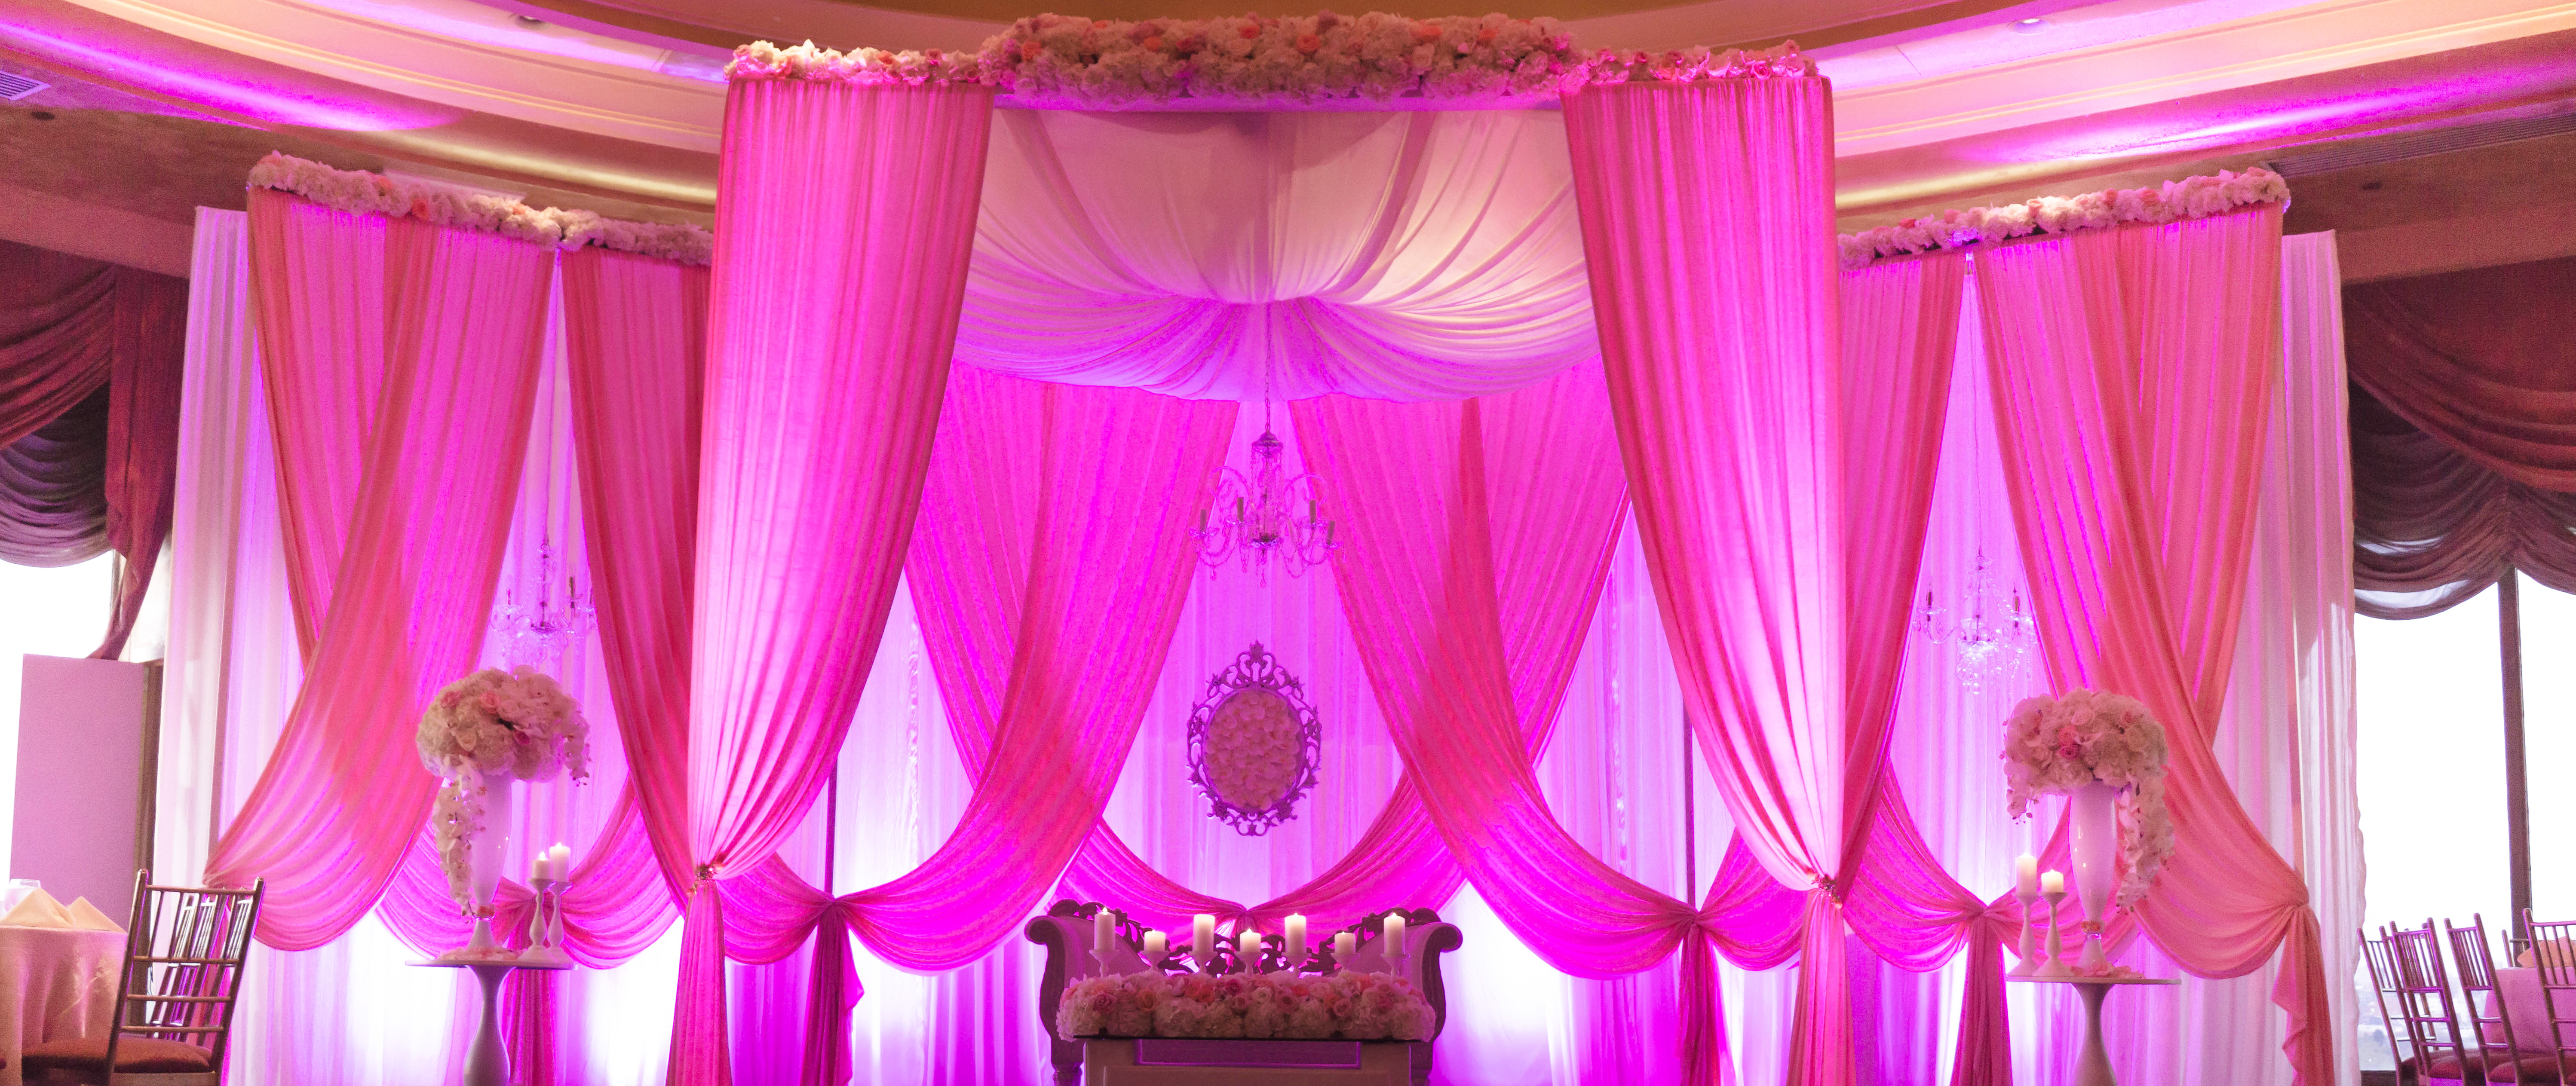 Floor to ceiling fuchsia colored draped linens creating a spectacular wedding ceremony site